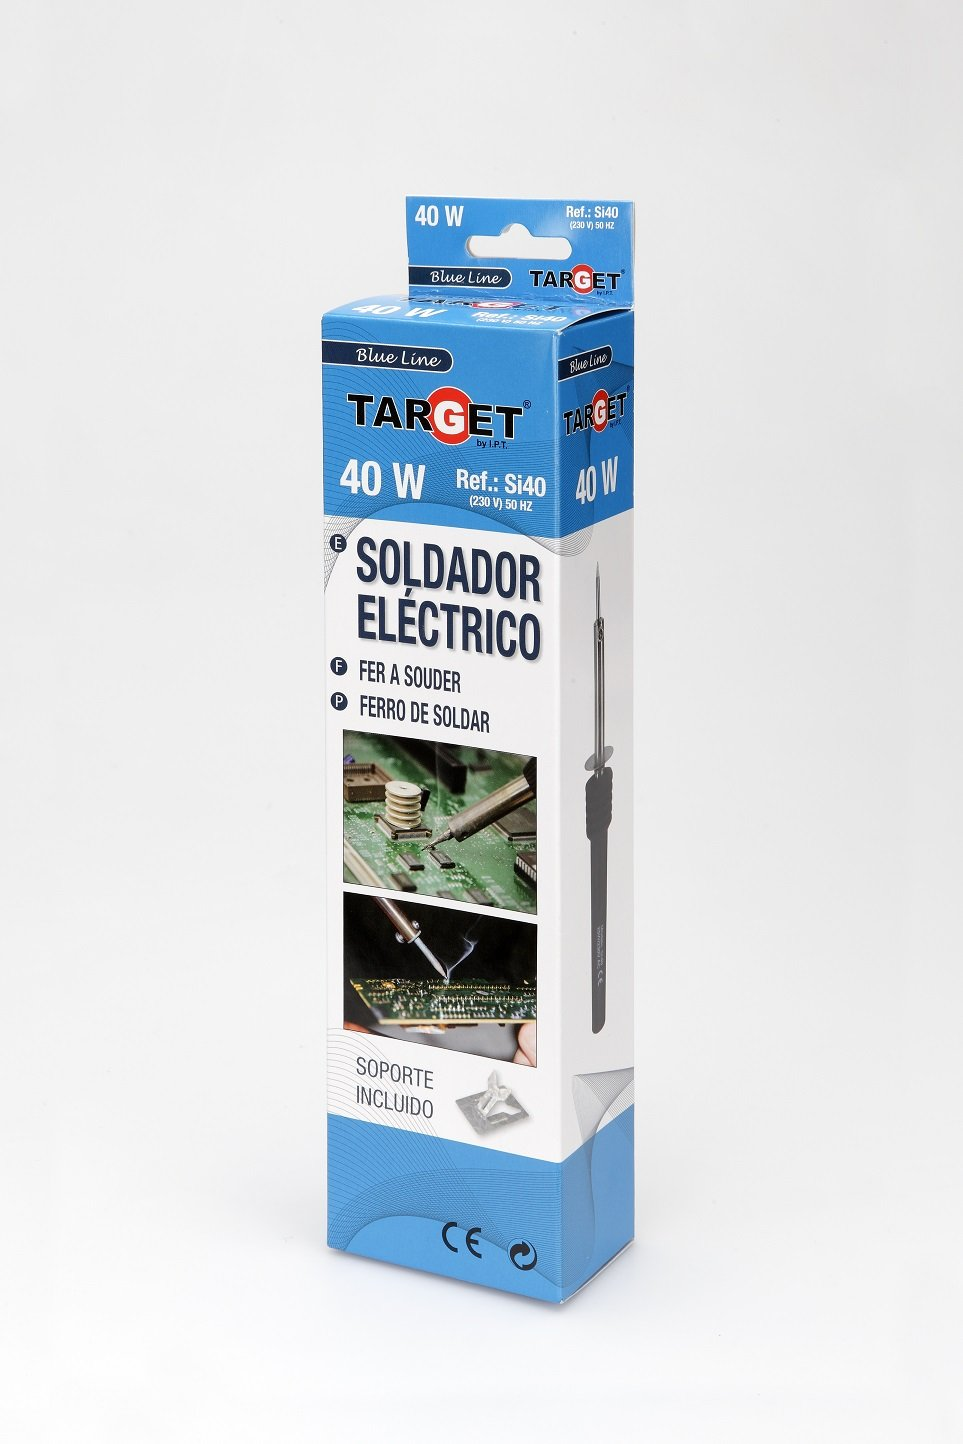 Target SI40 - Soldador De Lapiz Electronica 40.W: Amazon.es: Industria, empresas y ciencia